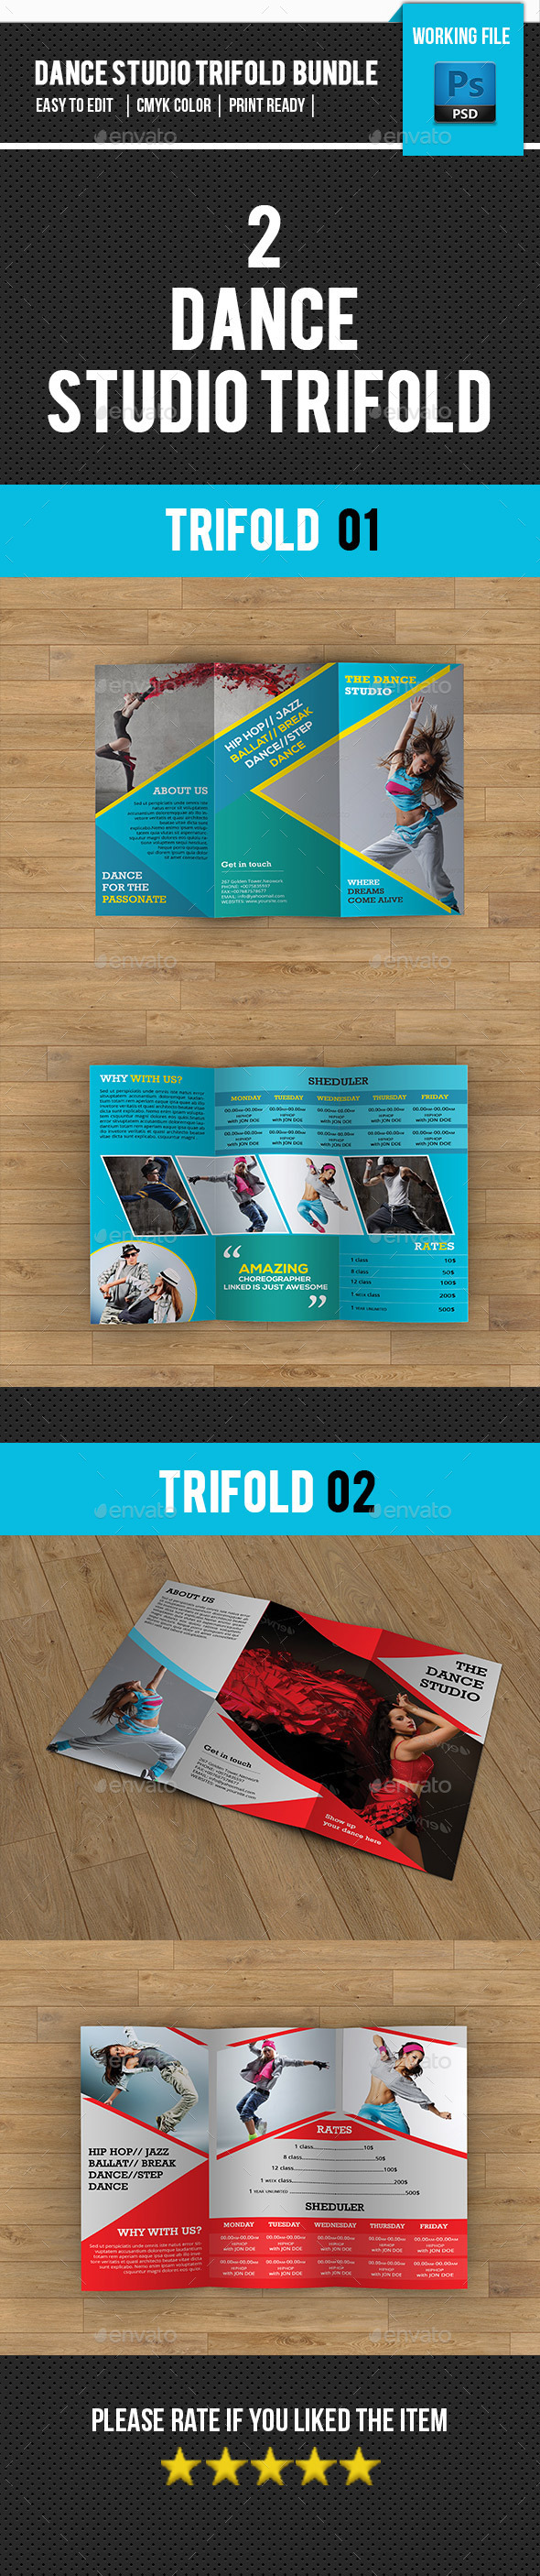 Dance Studio Trifold Brochure Bundle-V13 - Corporate Brochures